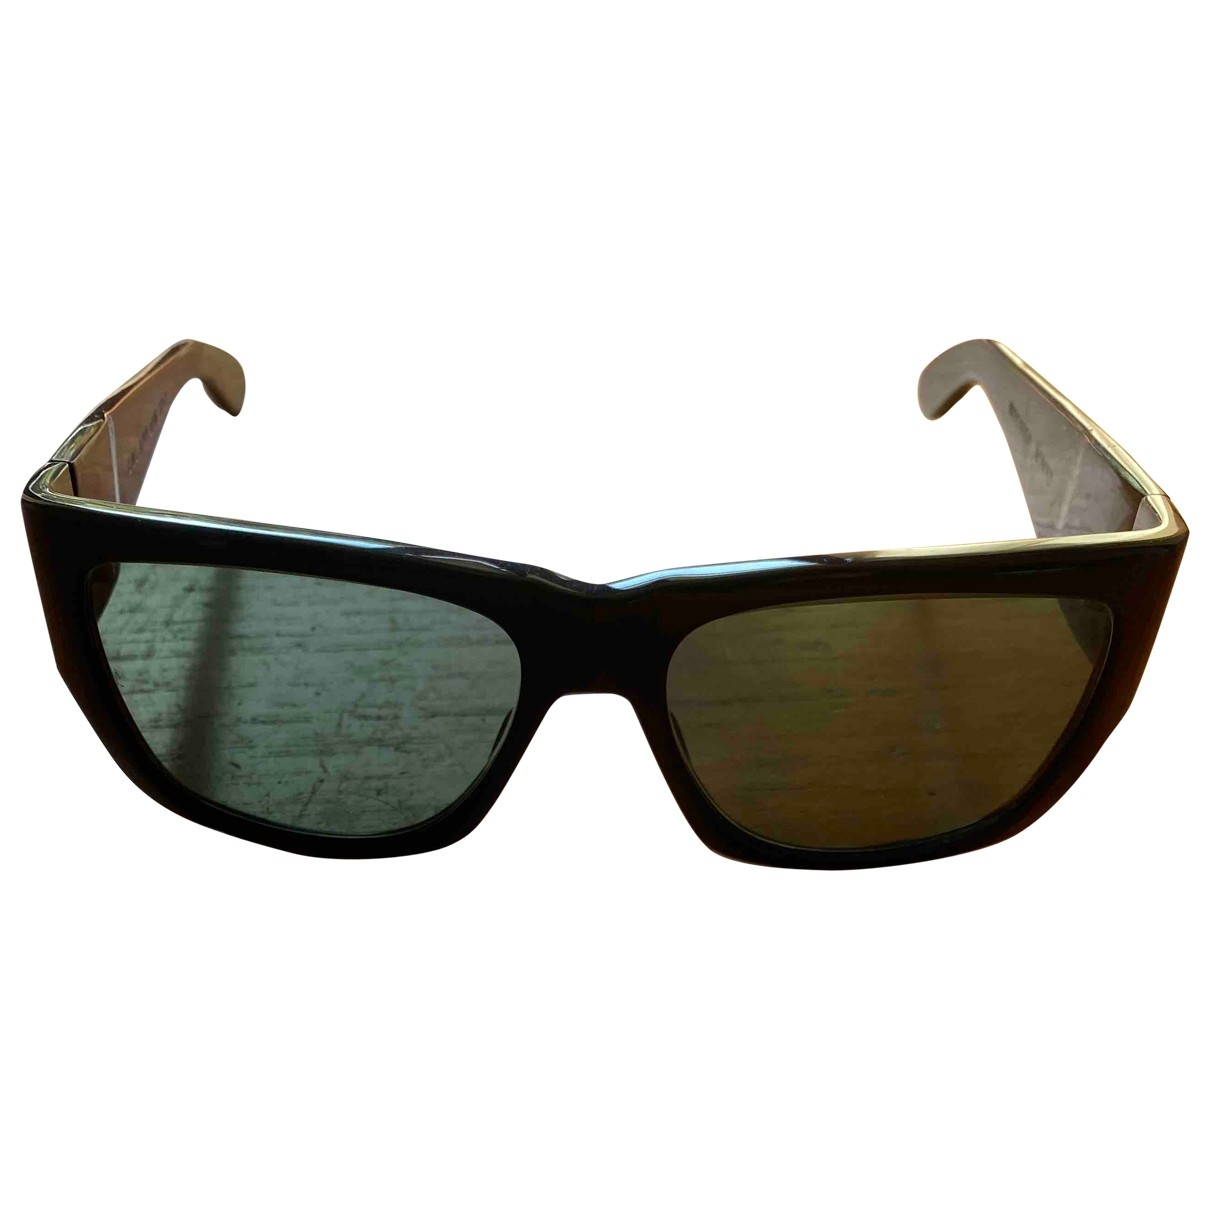 Ray-ban N Black Sunglasses for Women